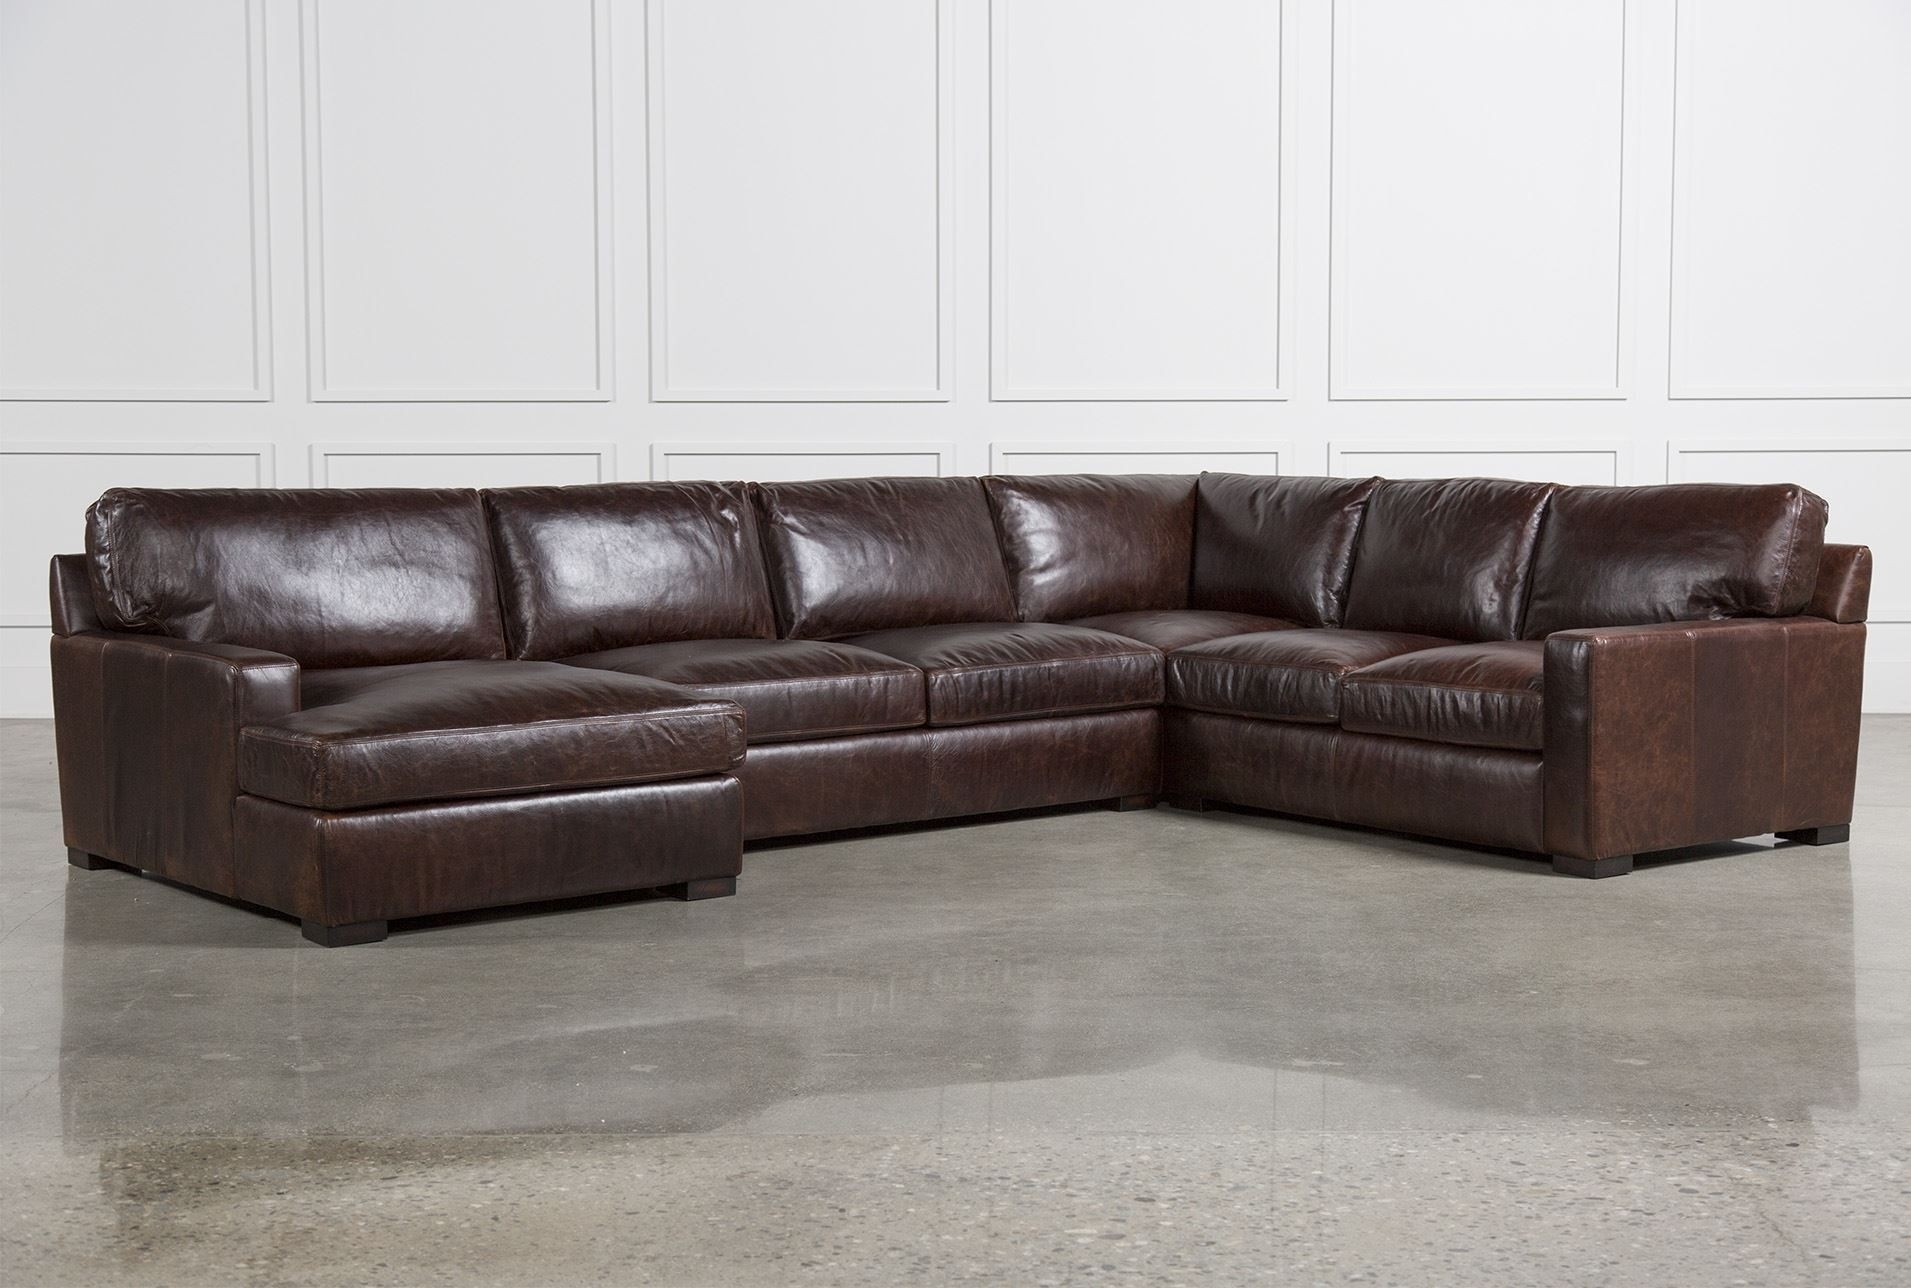 Gordon 3 Piece Sectional W/laf Chaise | For The Home | Pinterest | 3 Within Glamour Ii 3 Piece Sectionals (View 10 of 25)